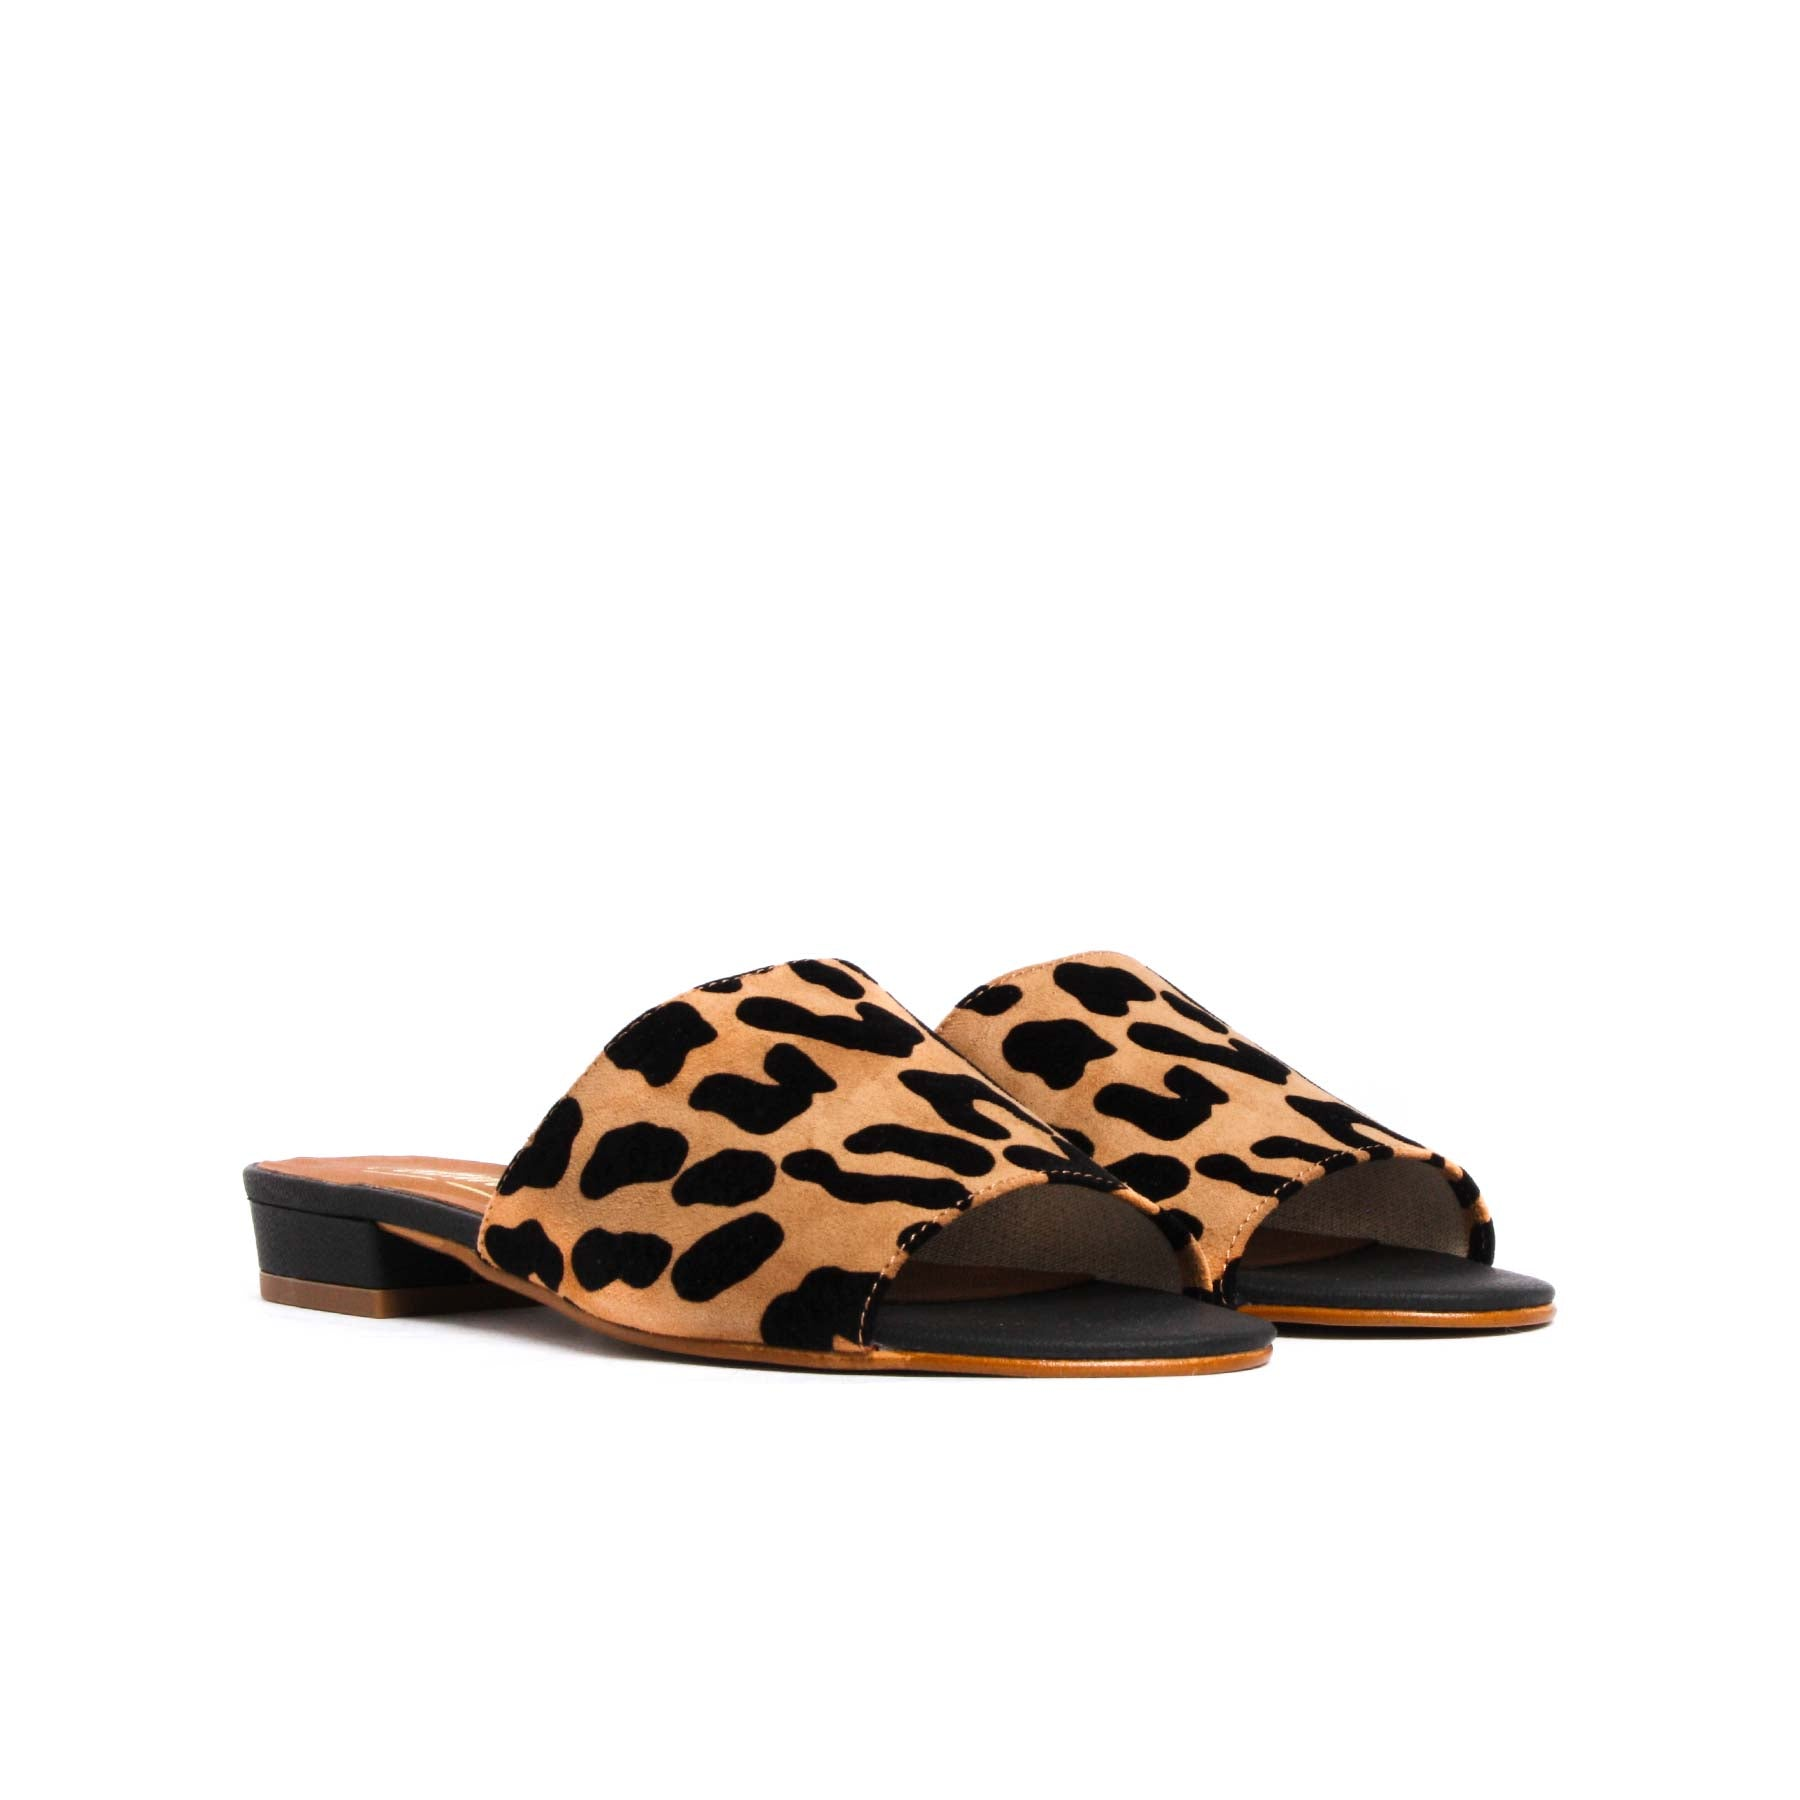 Sandals, Elma Leopard Suede - Lintervalle shoes for woman